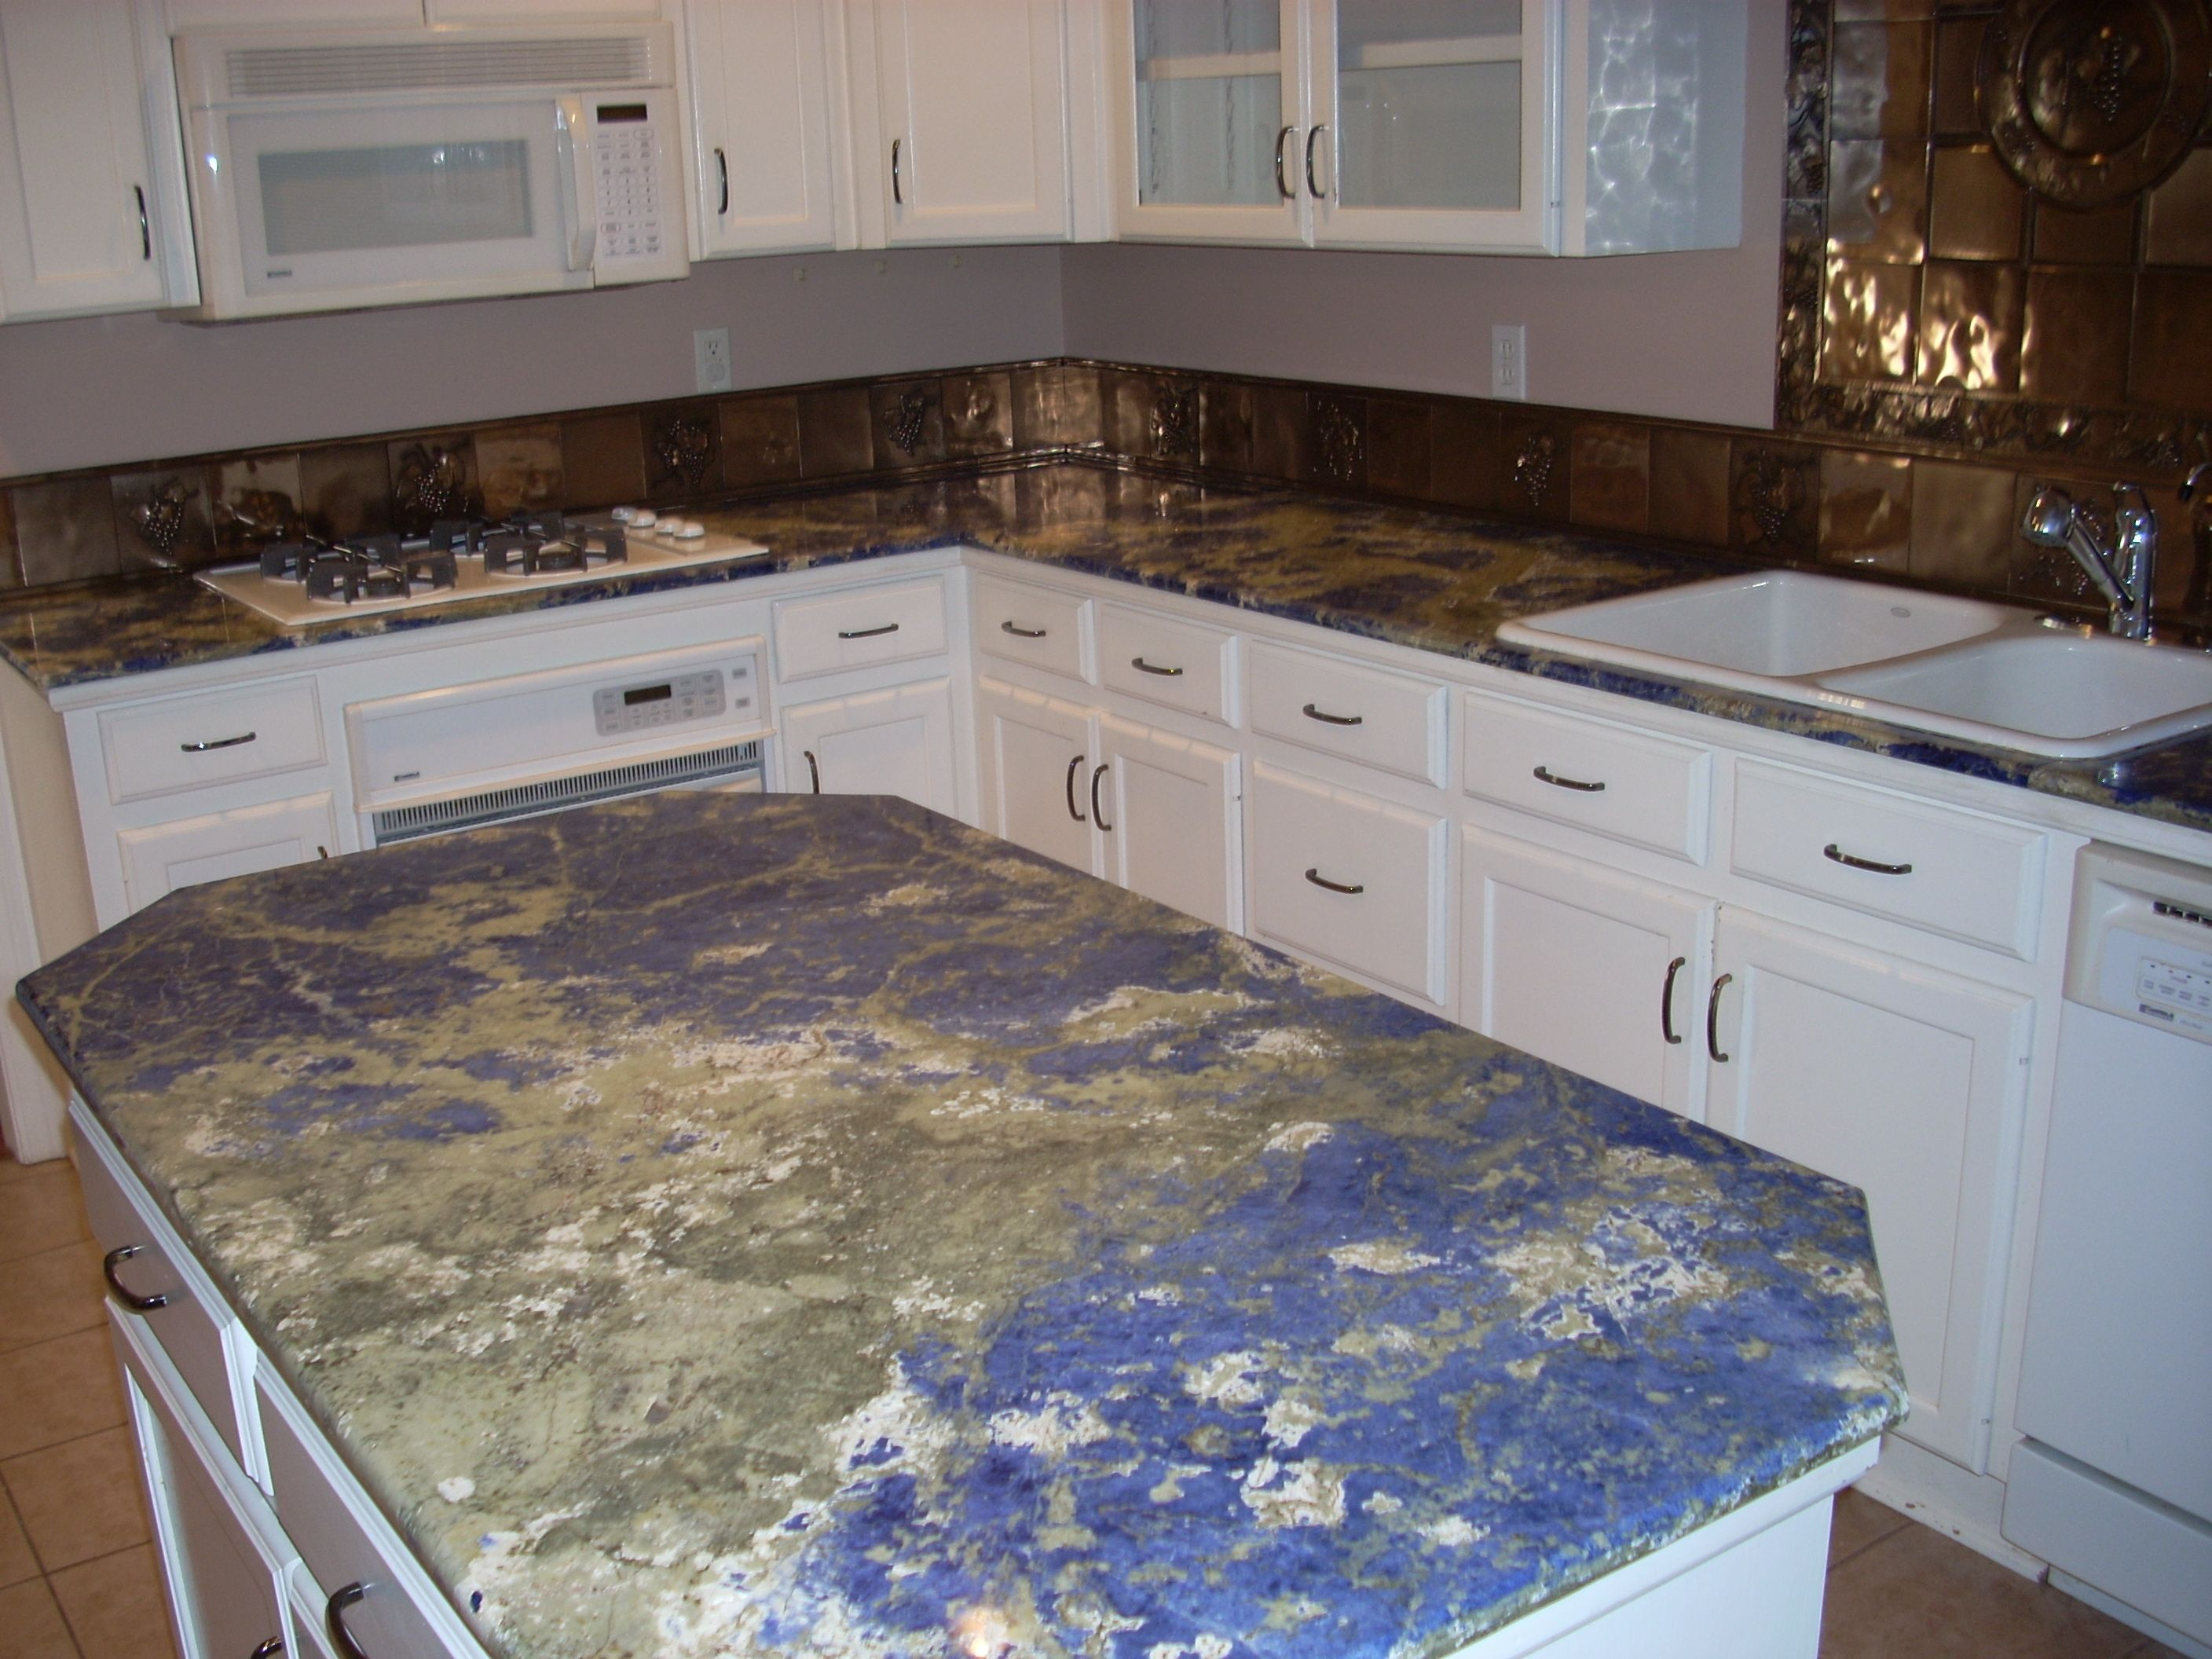 Sodalite blue granite countertops amazing texture variation looks